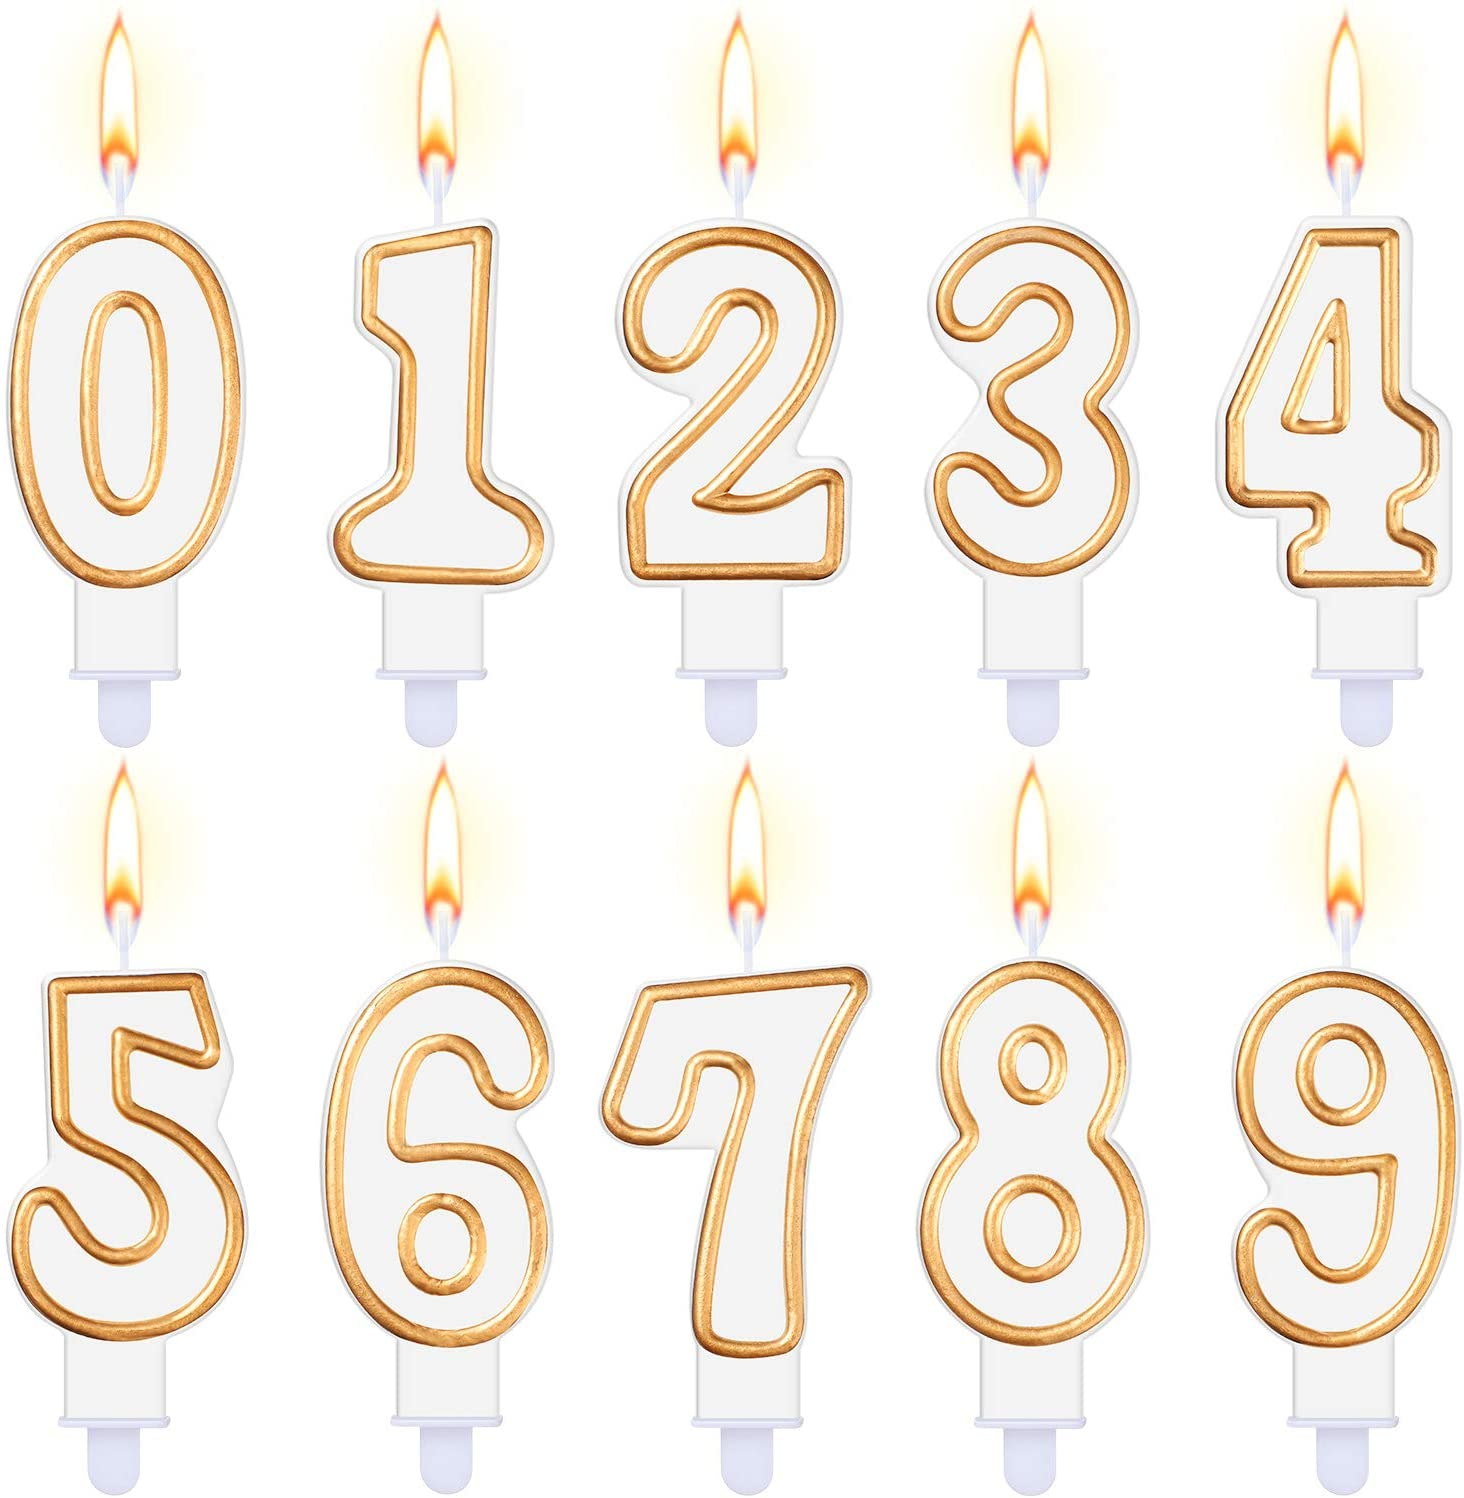 Yaomiao 10 Pieces Birthday Numeral Candles Cake Numeral Candles Number 0-9 Glitter Cake Topper Decoration for Birthday Party Favor (Golden Edge)